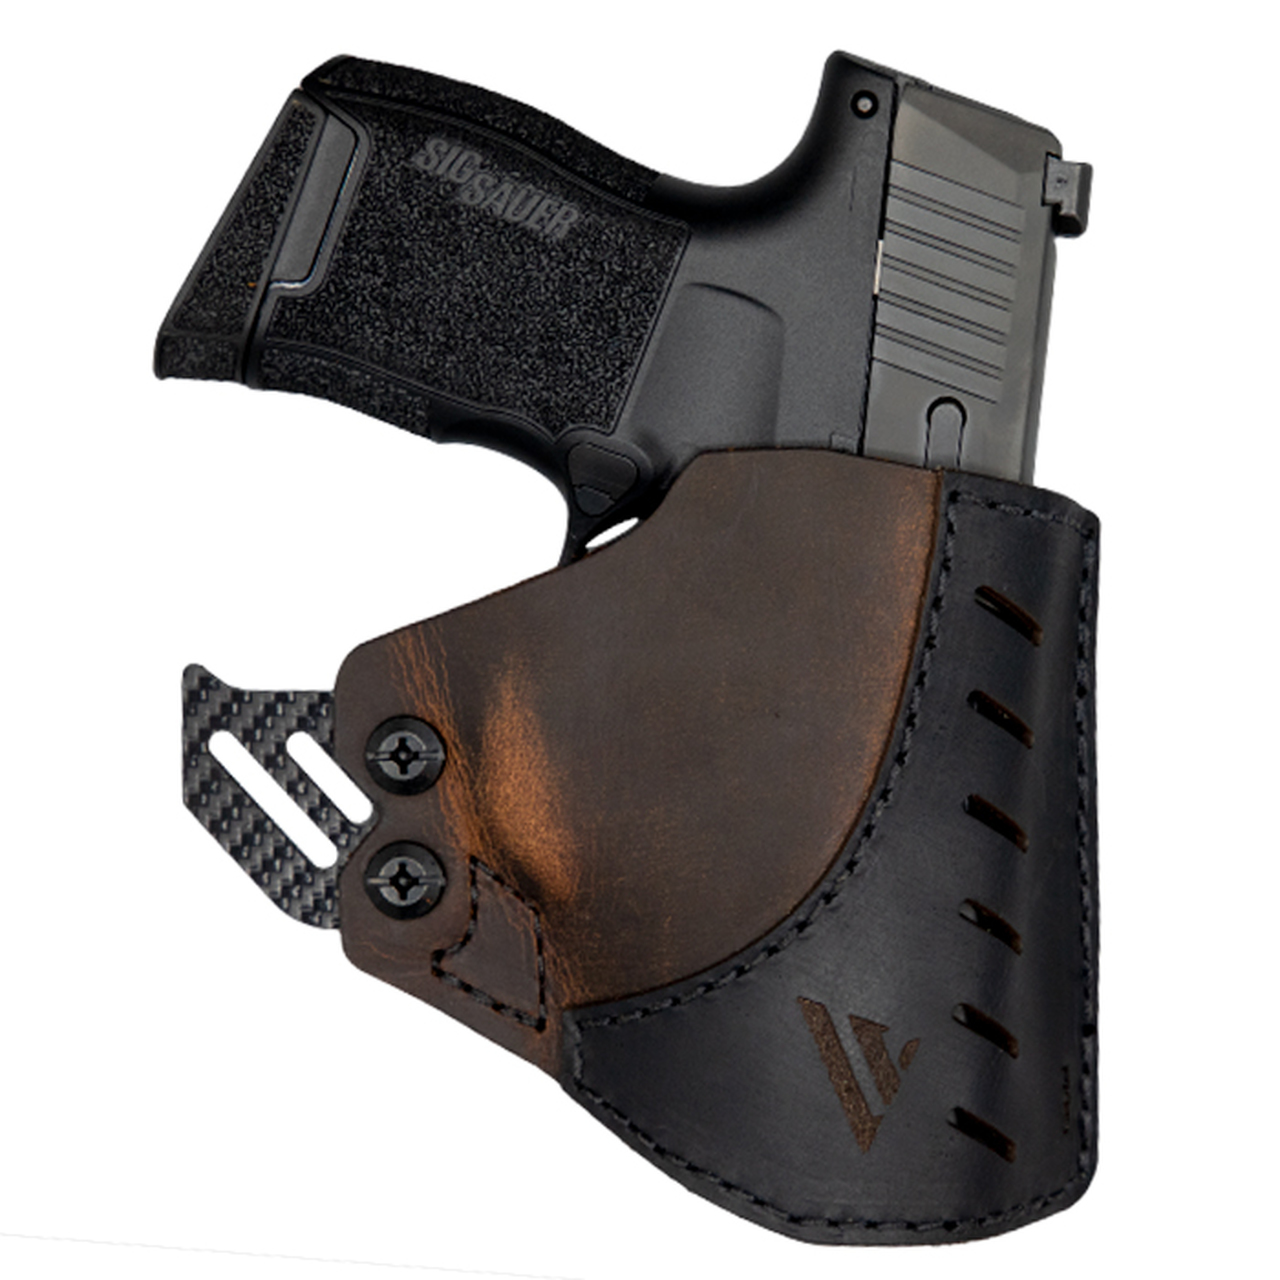 Are Pocket Holsters a Good Idea?